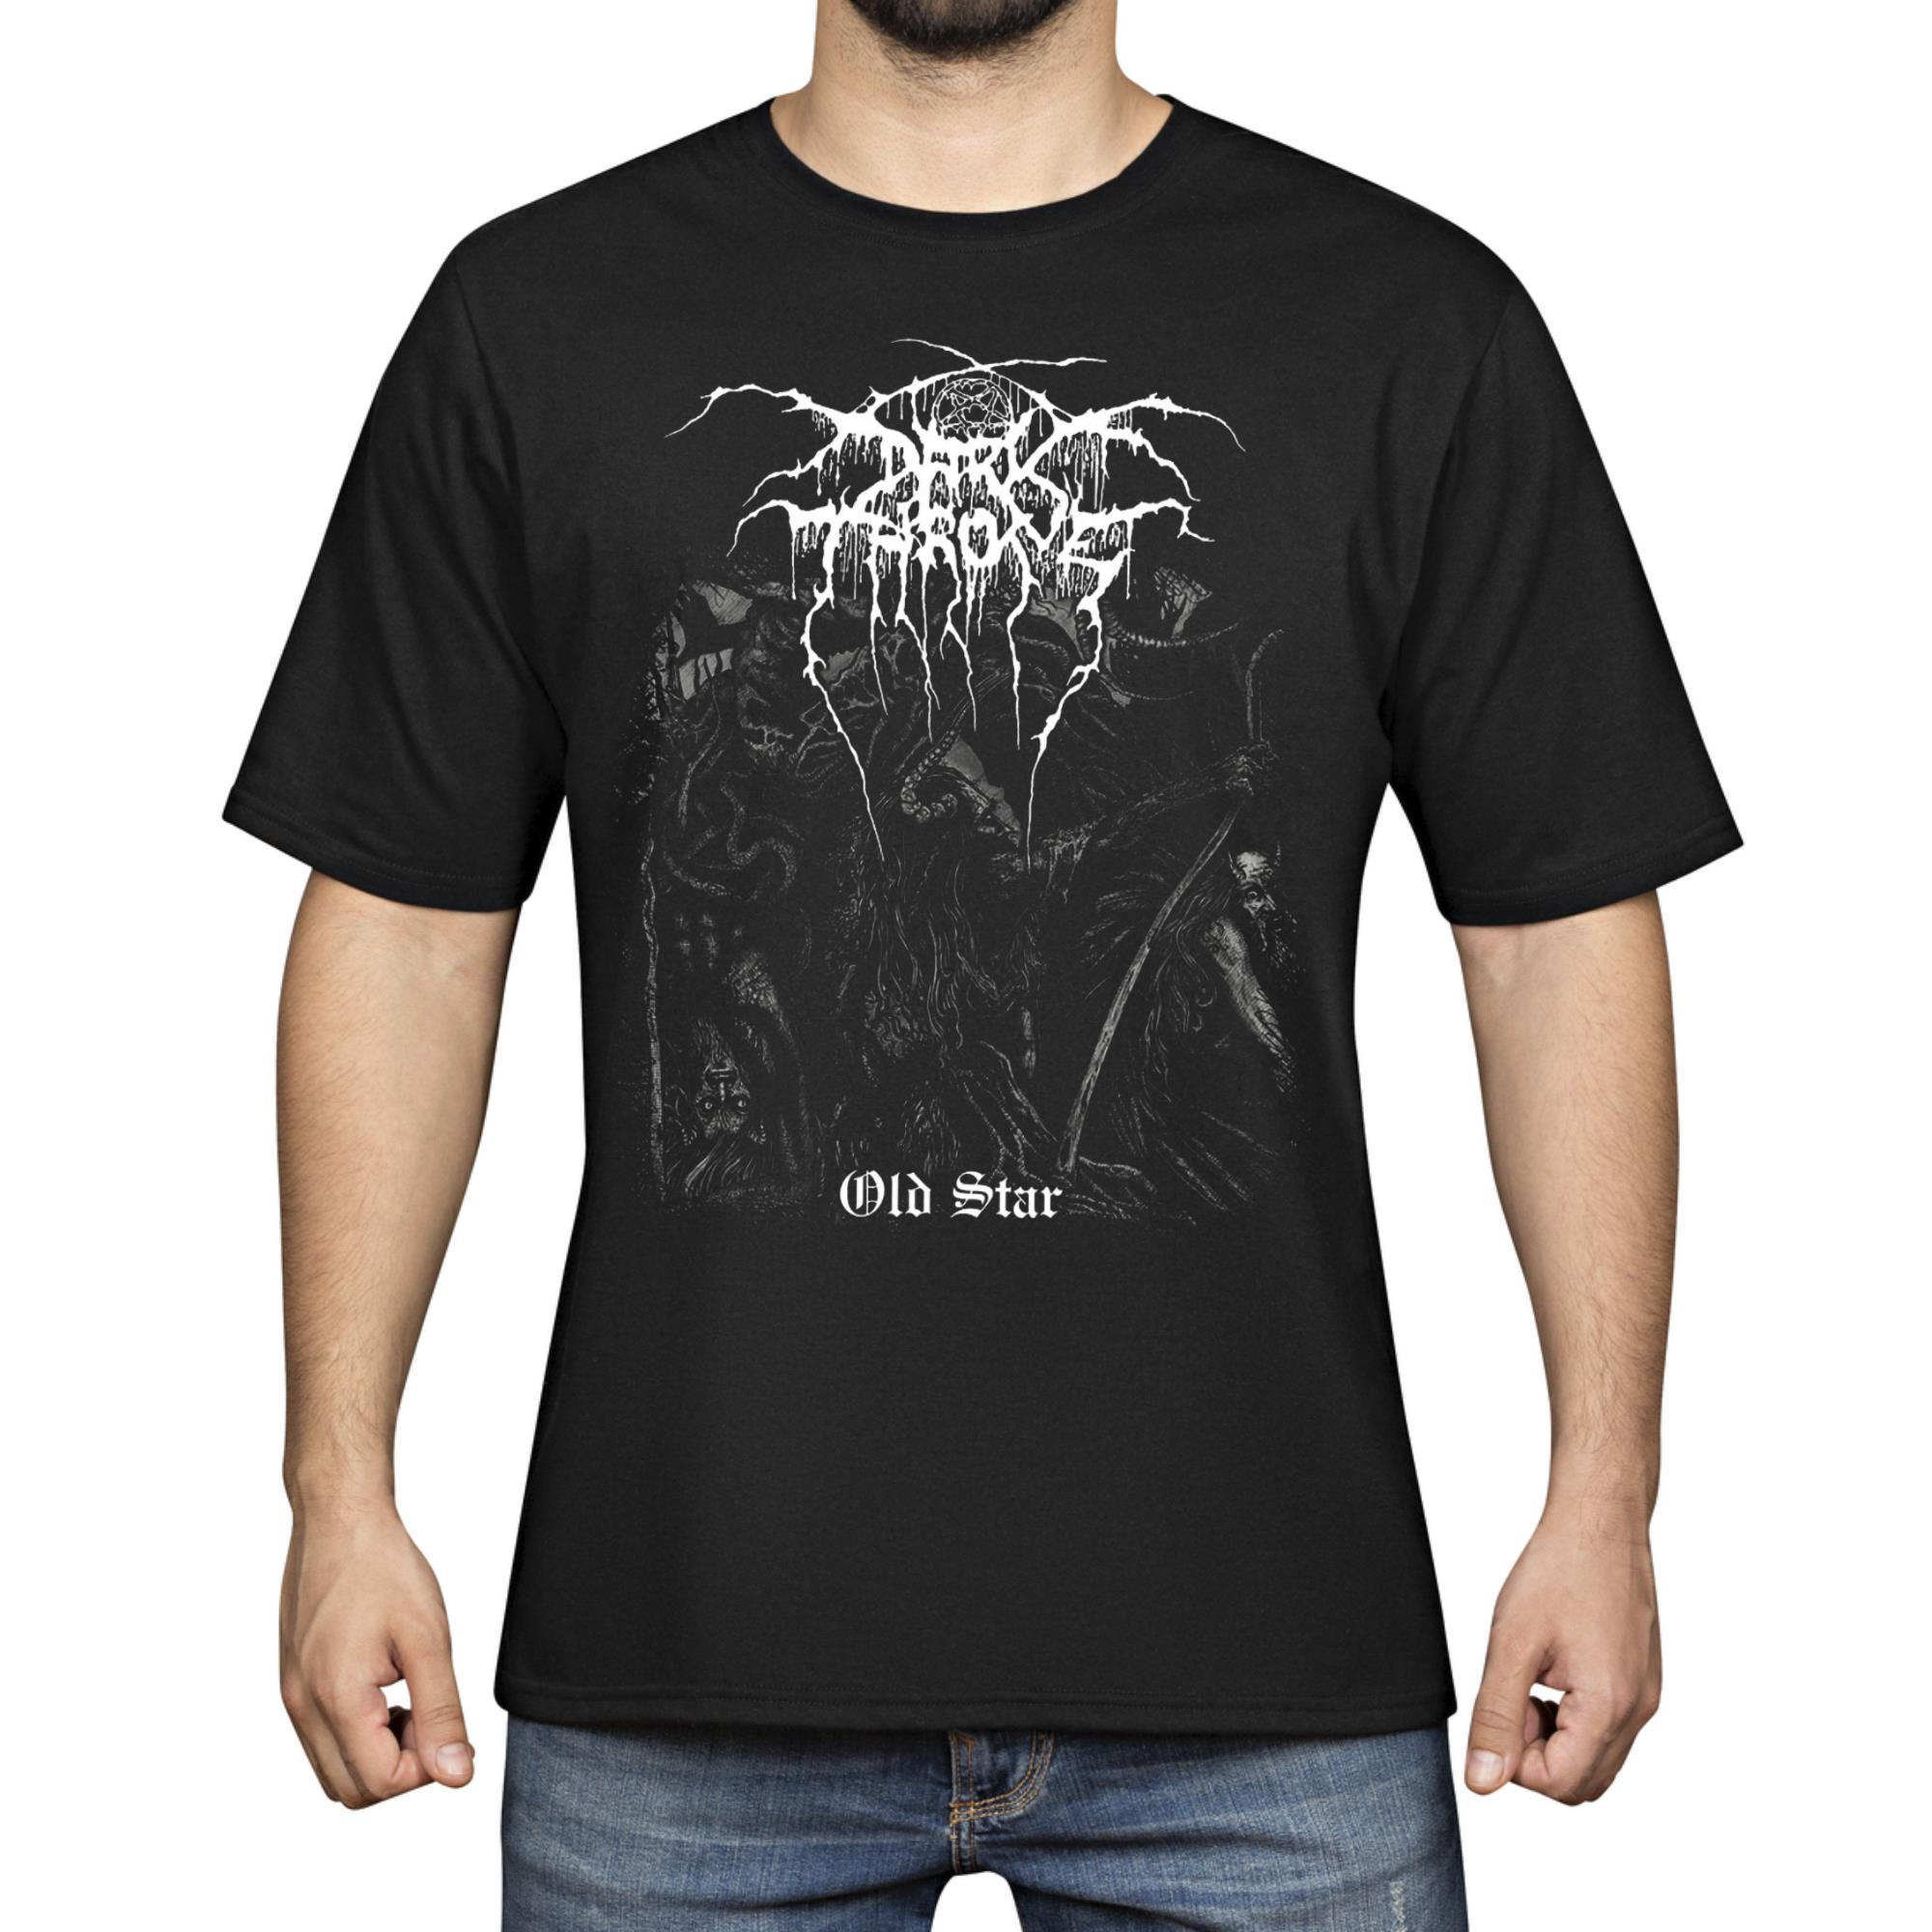 Old Star T-shirt